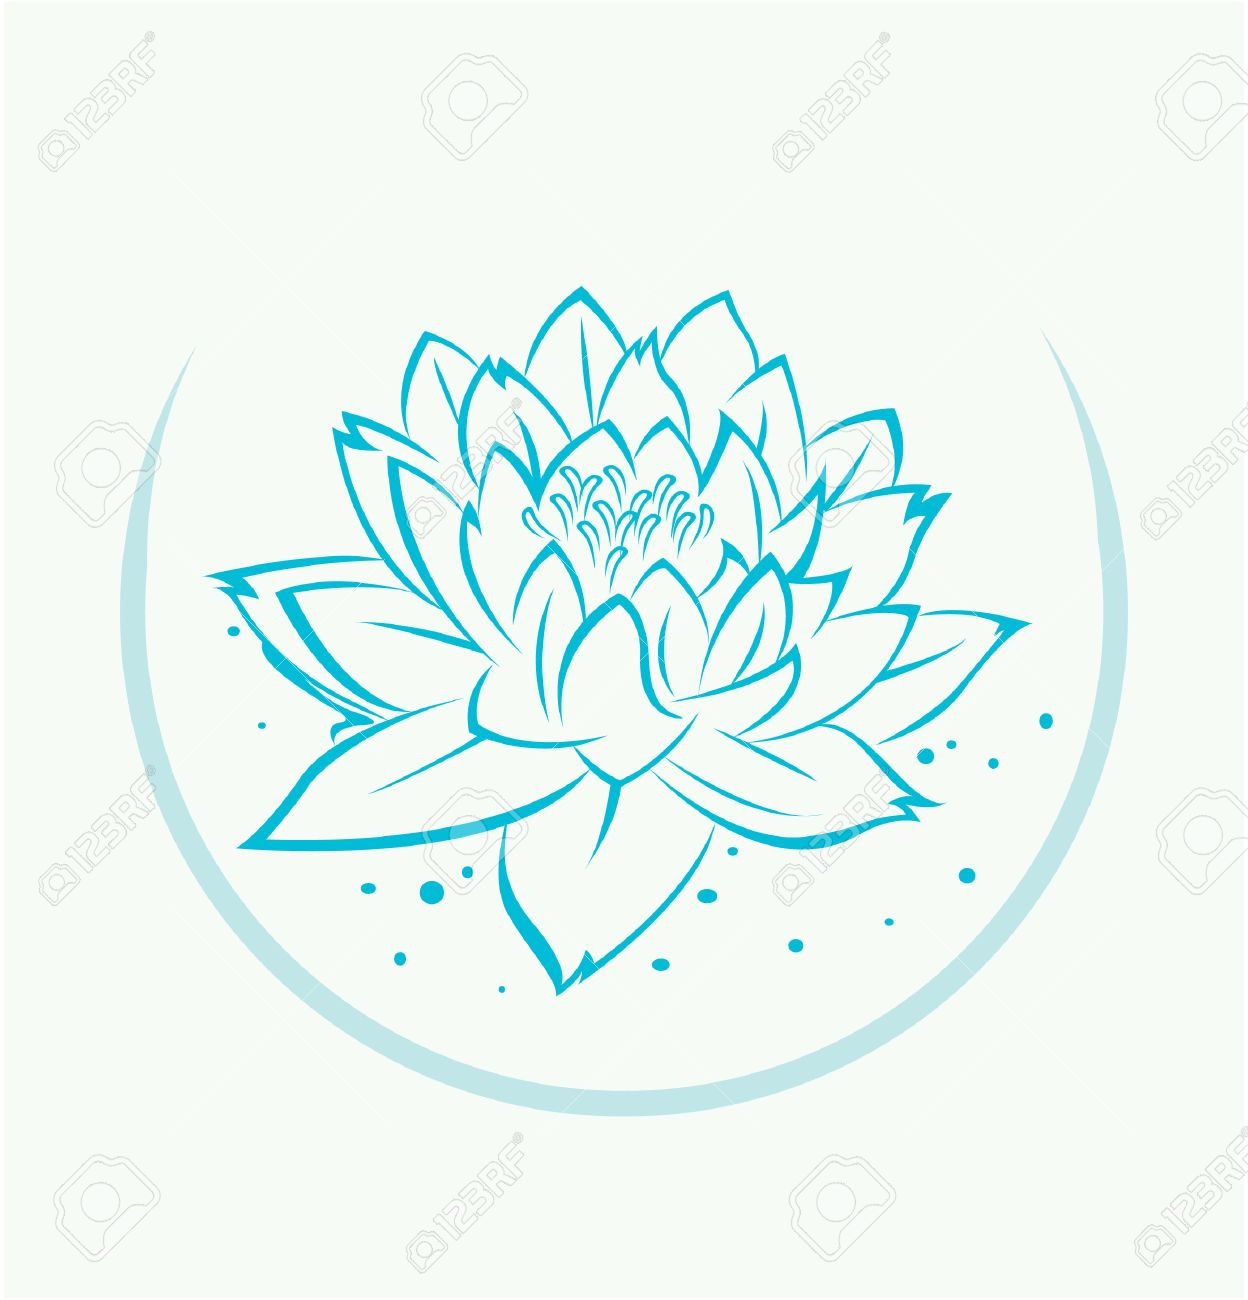 Lotus Flower Symbol Royalty Free Cliparts Vectors And Stock